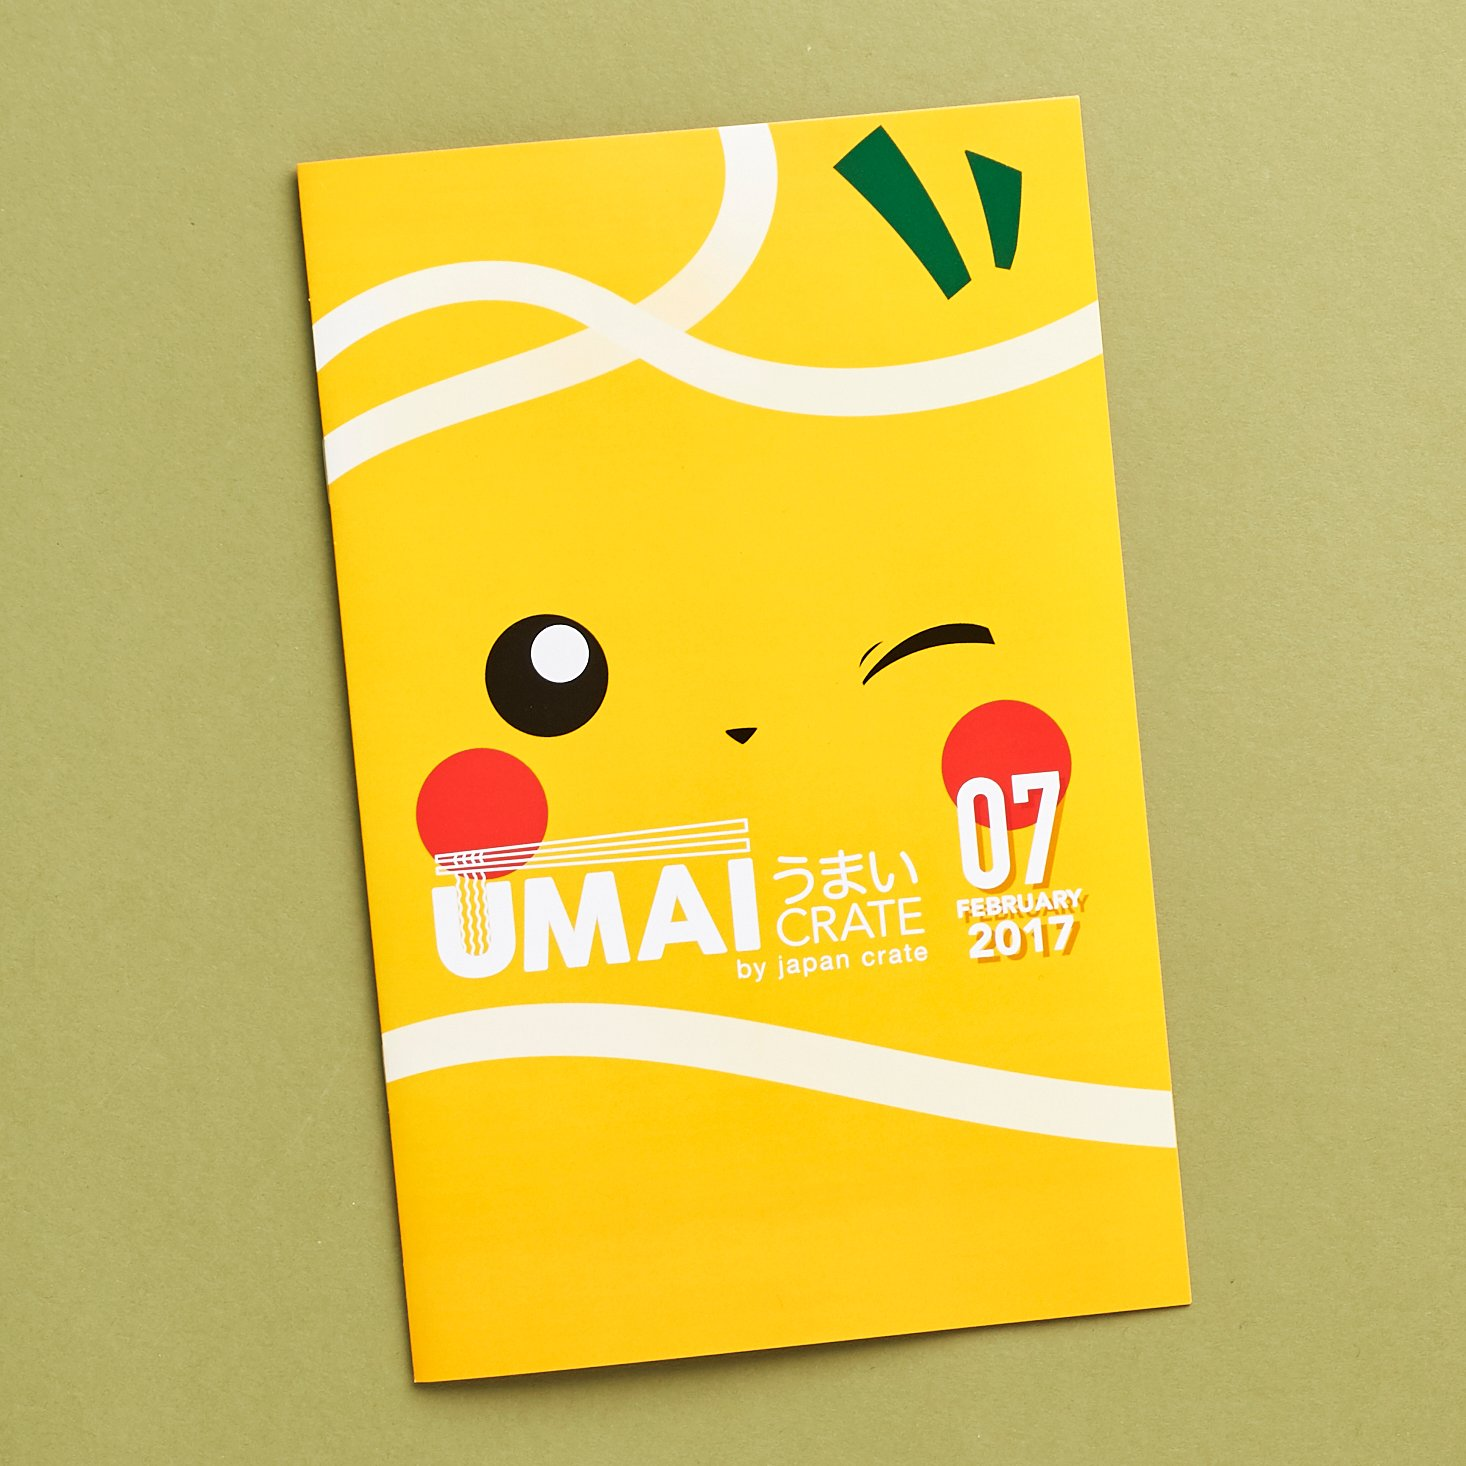 Read our review of the February 2017 Umai Crate!